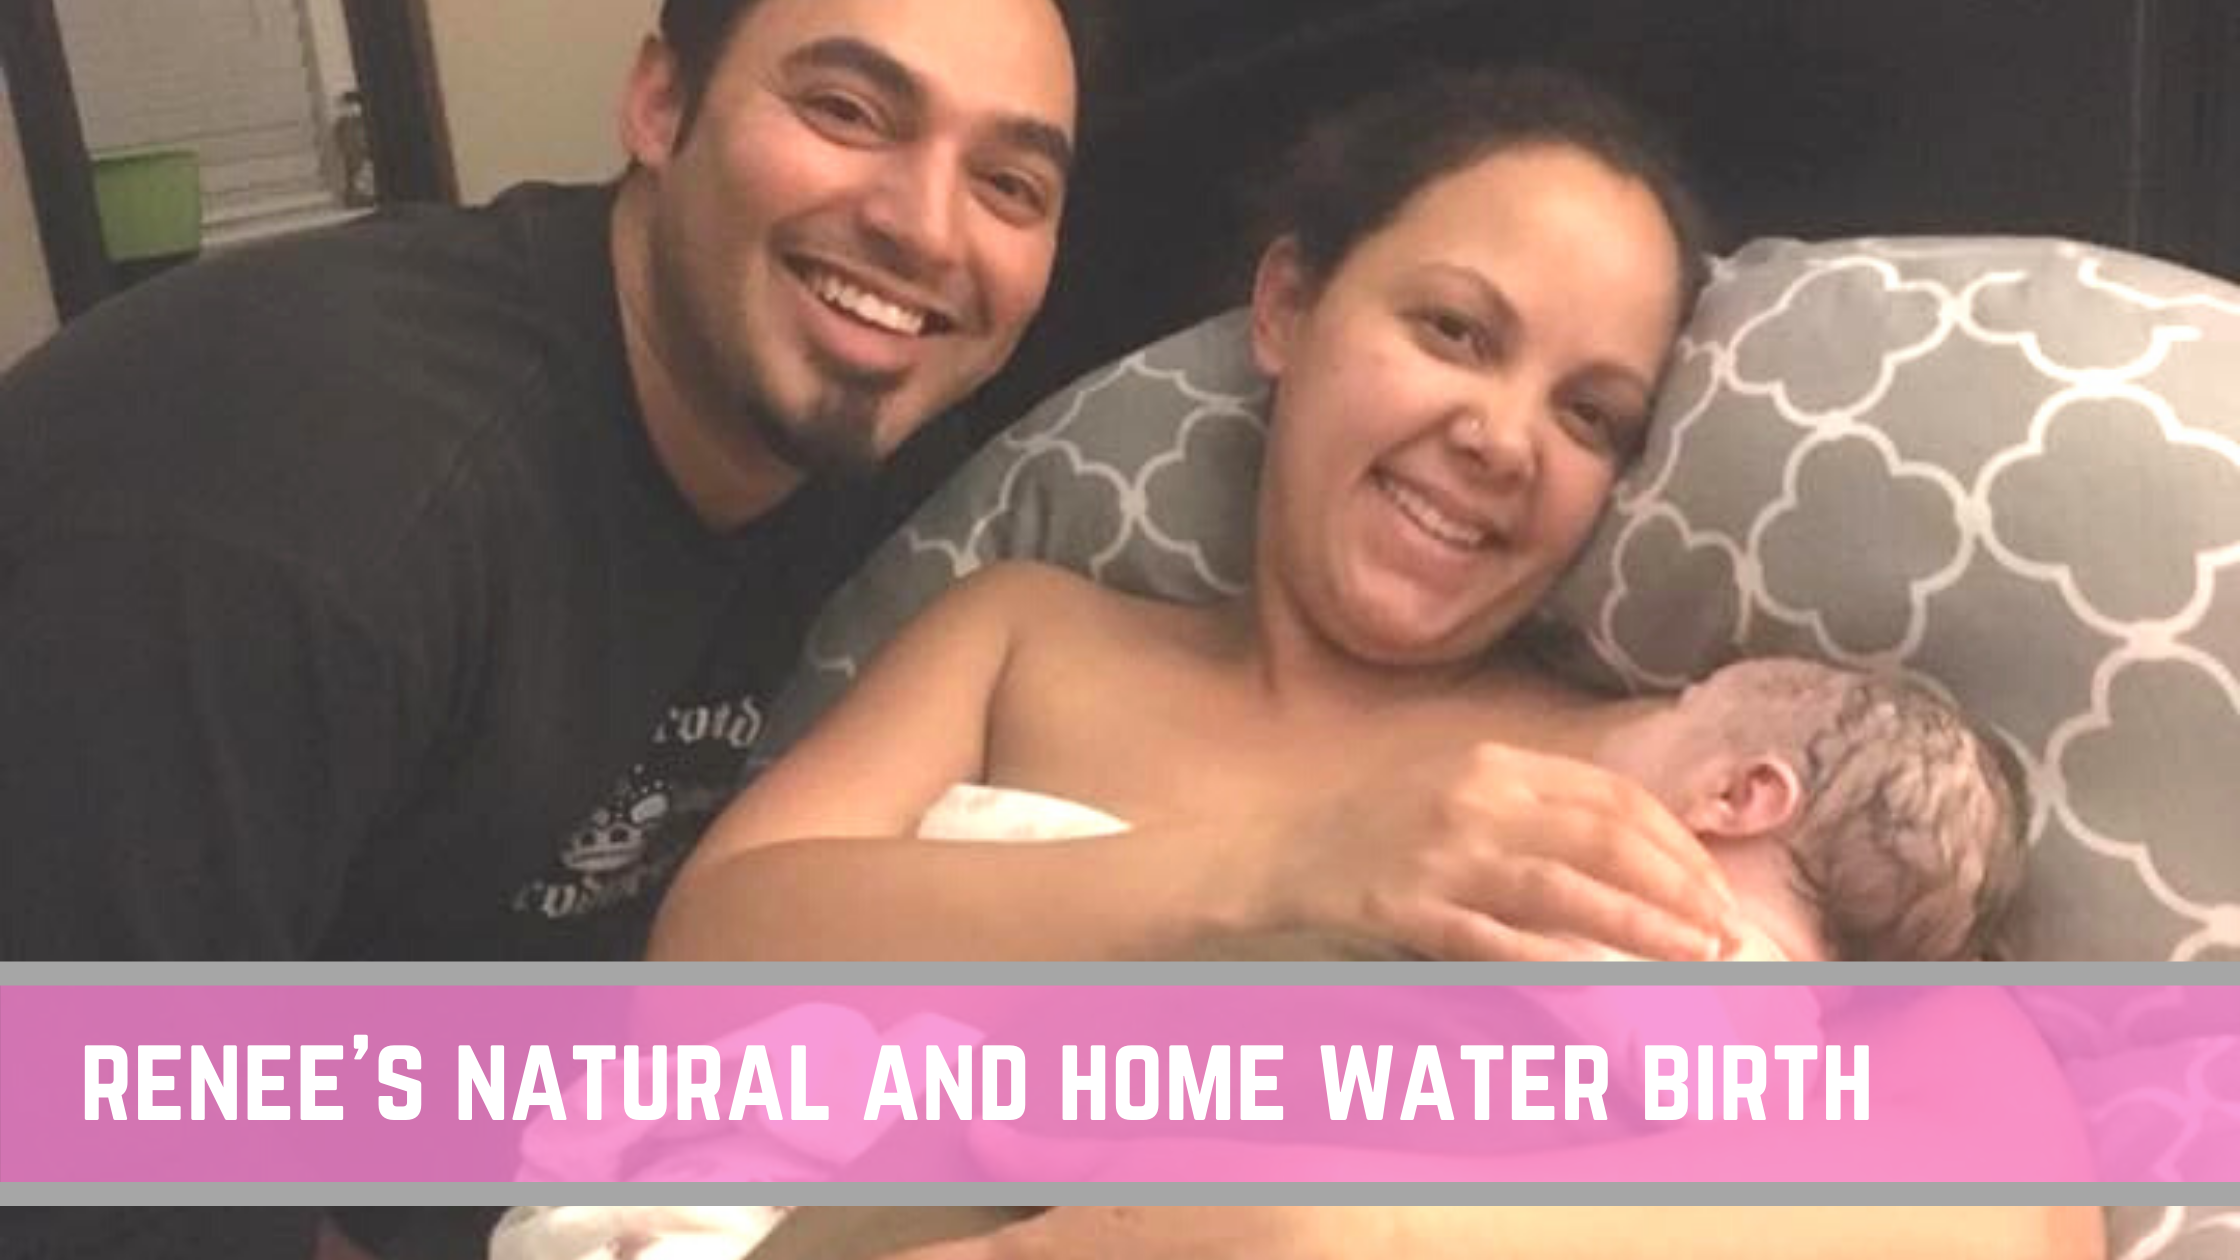 Renee's Birth Story: a planned home birth